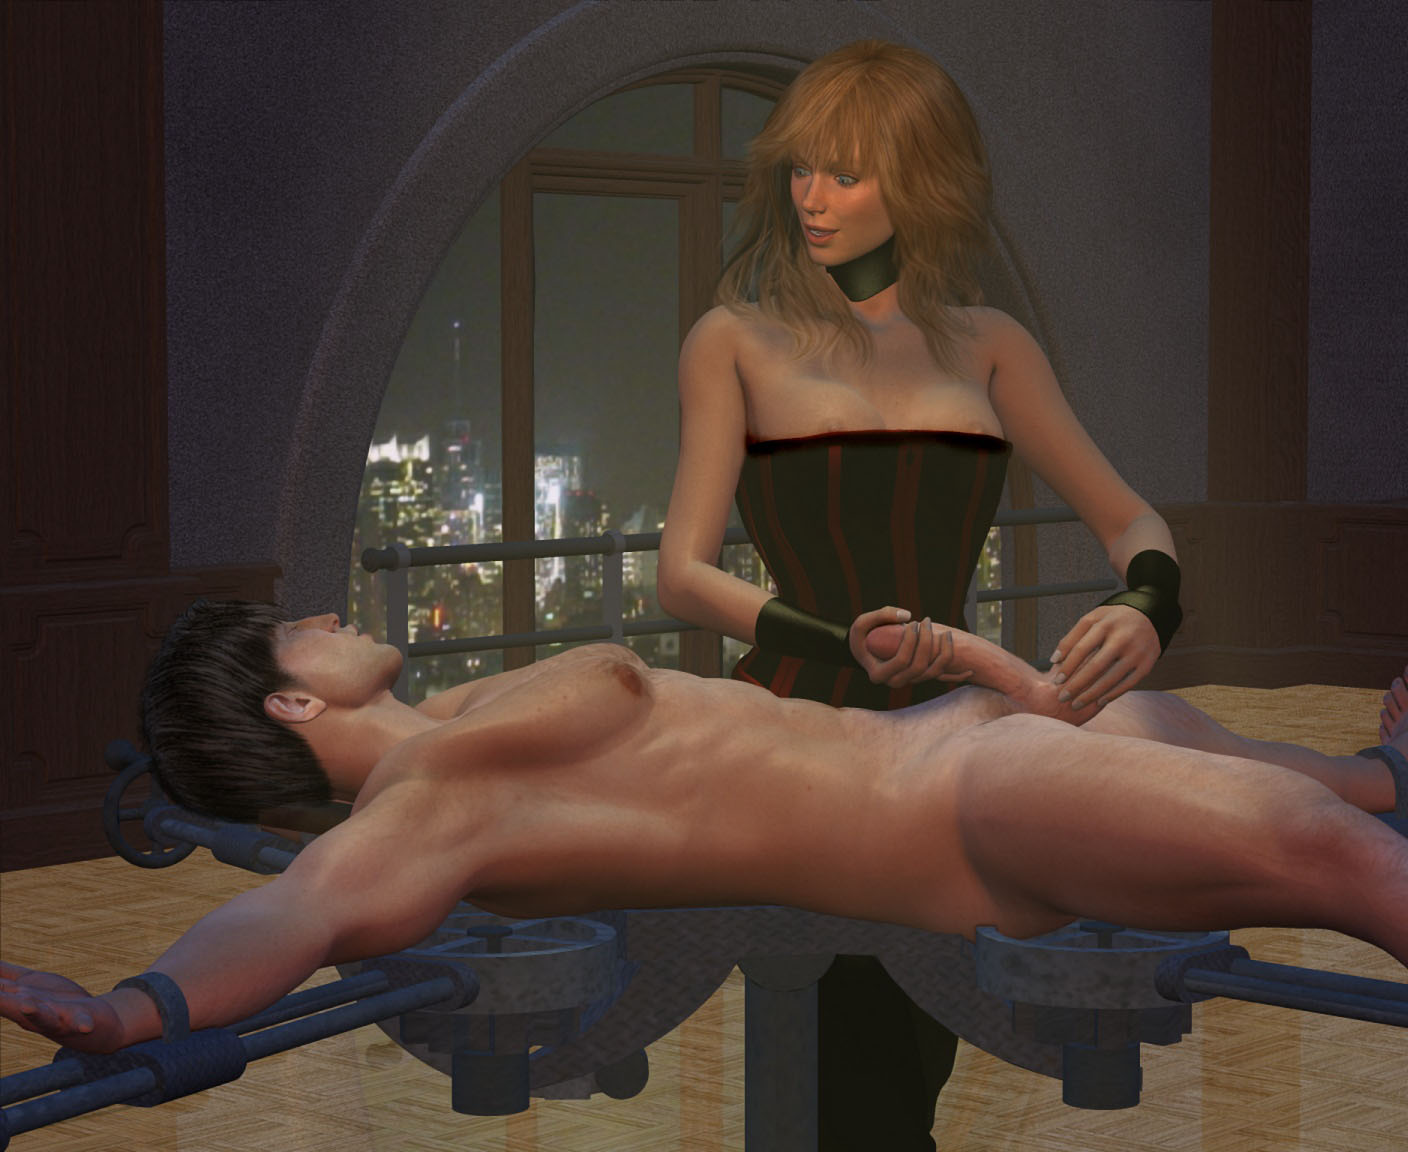 Bondage sex flash games free download hentai tube